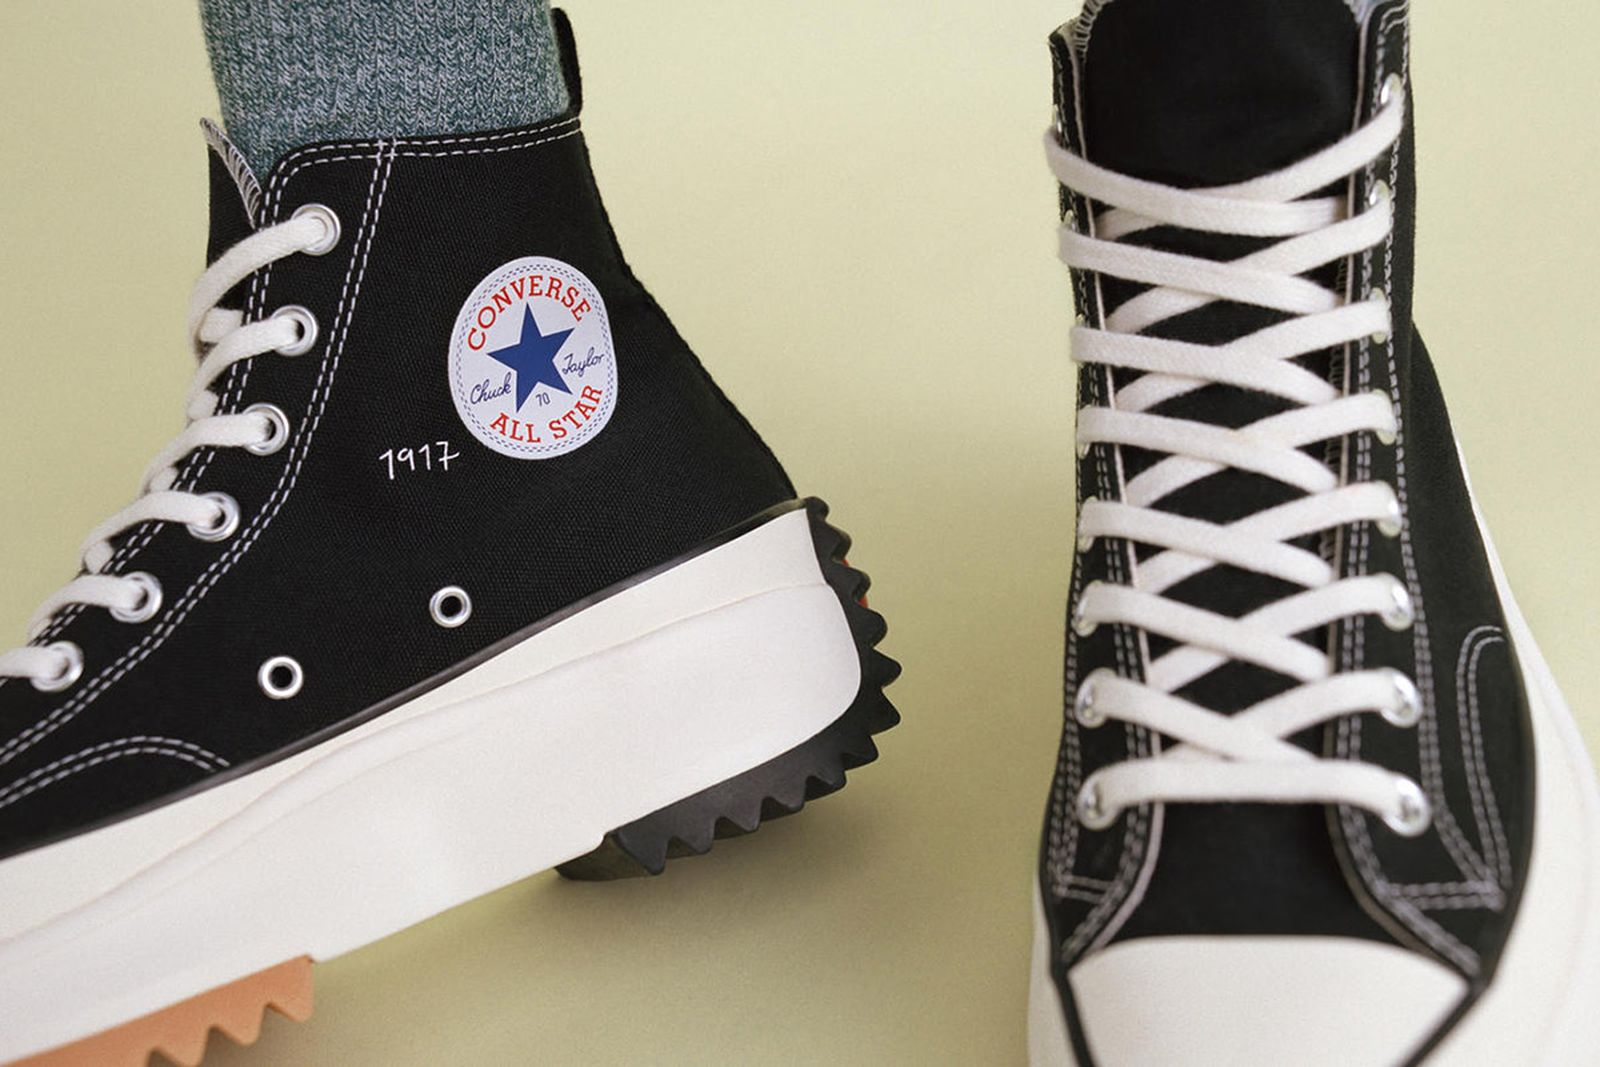 JW Anderson x Converse Run Star Hike Black: Where to Buy Today